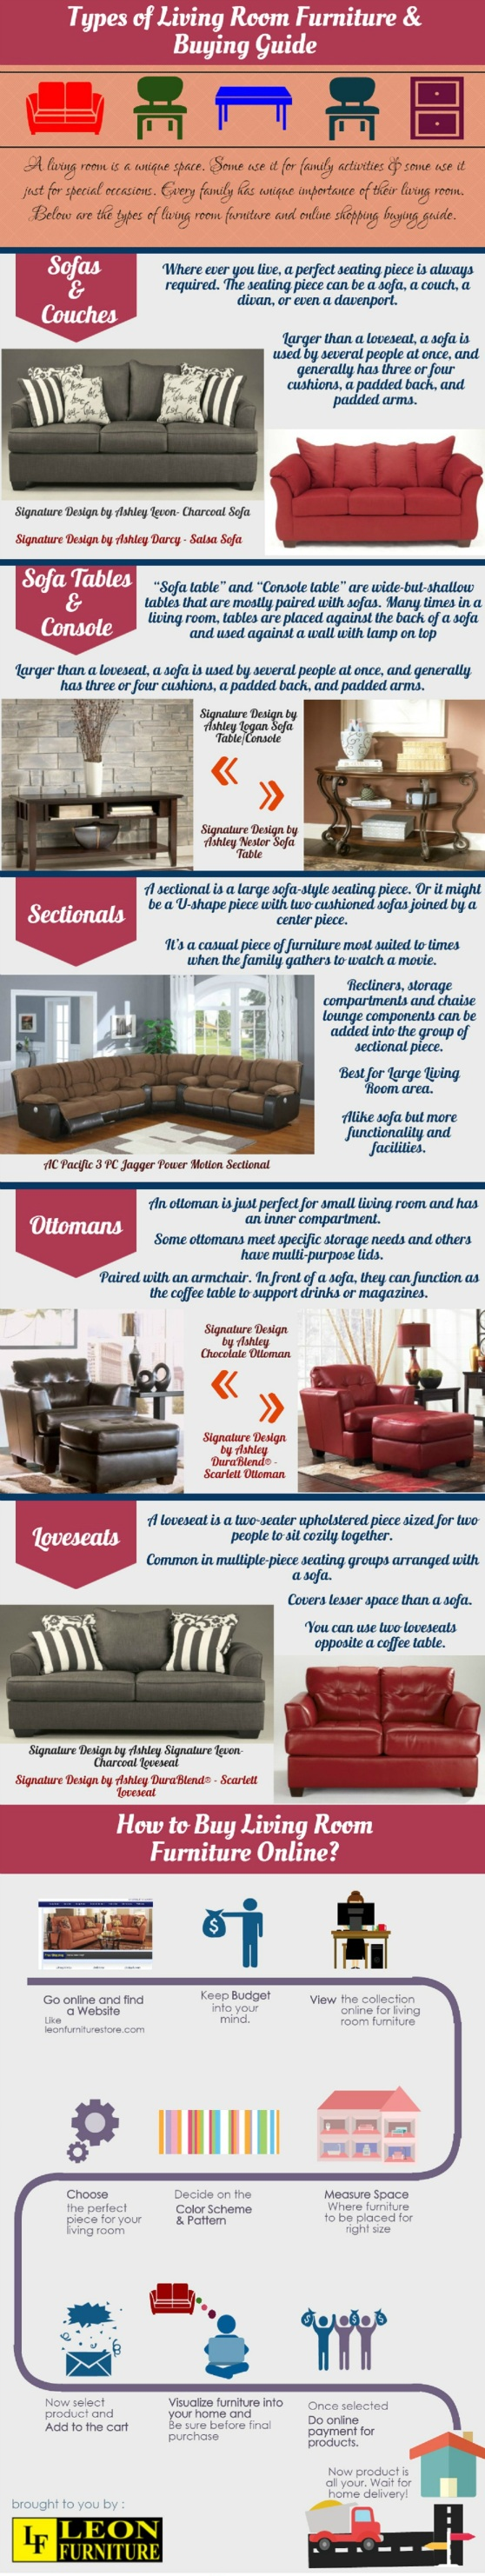 Types of Living Room Furniture & Buying Guide